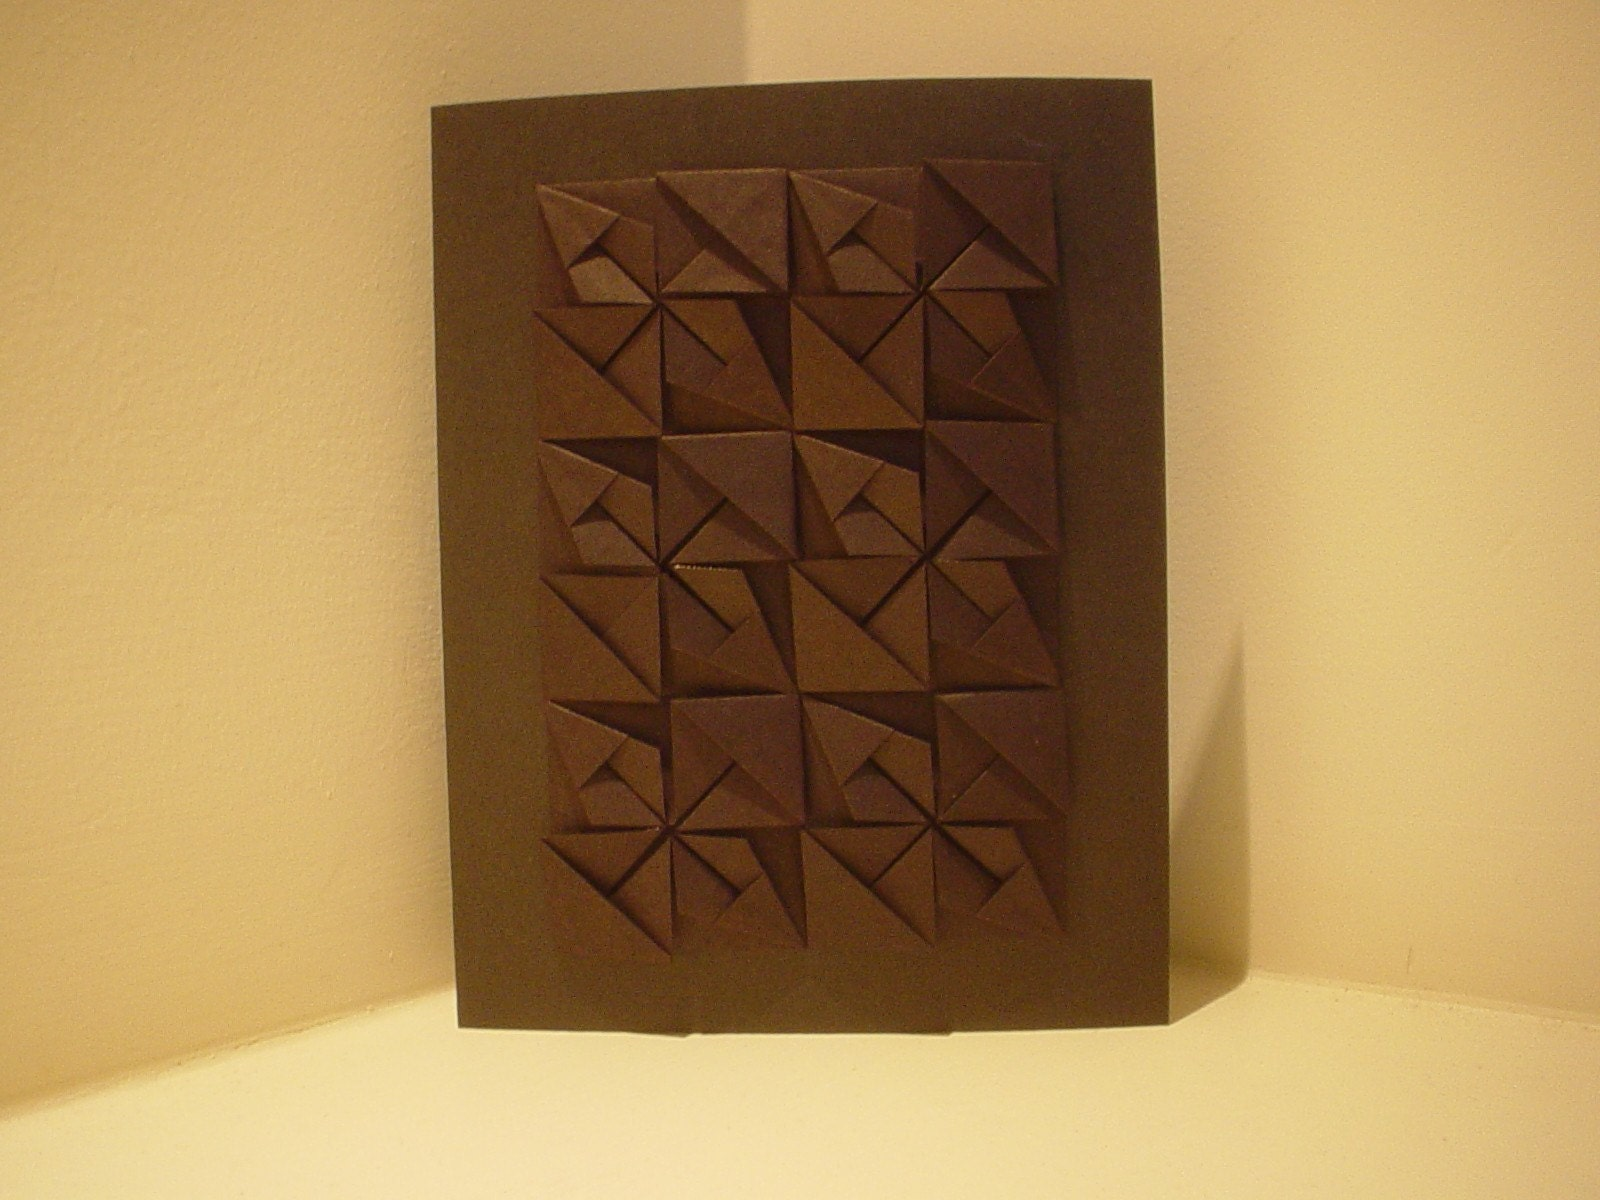 SIMPLE ORIGAMI PATTERNS « EMBROIDERY & ORIGAMI - photo#14